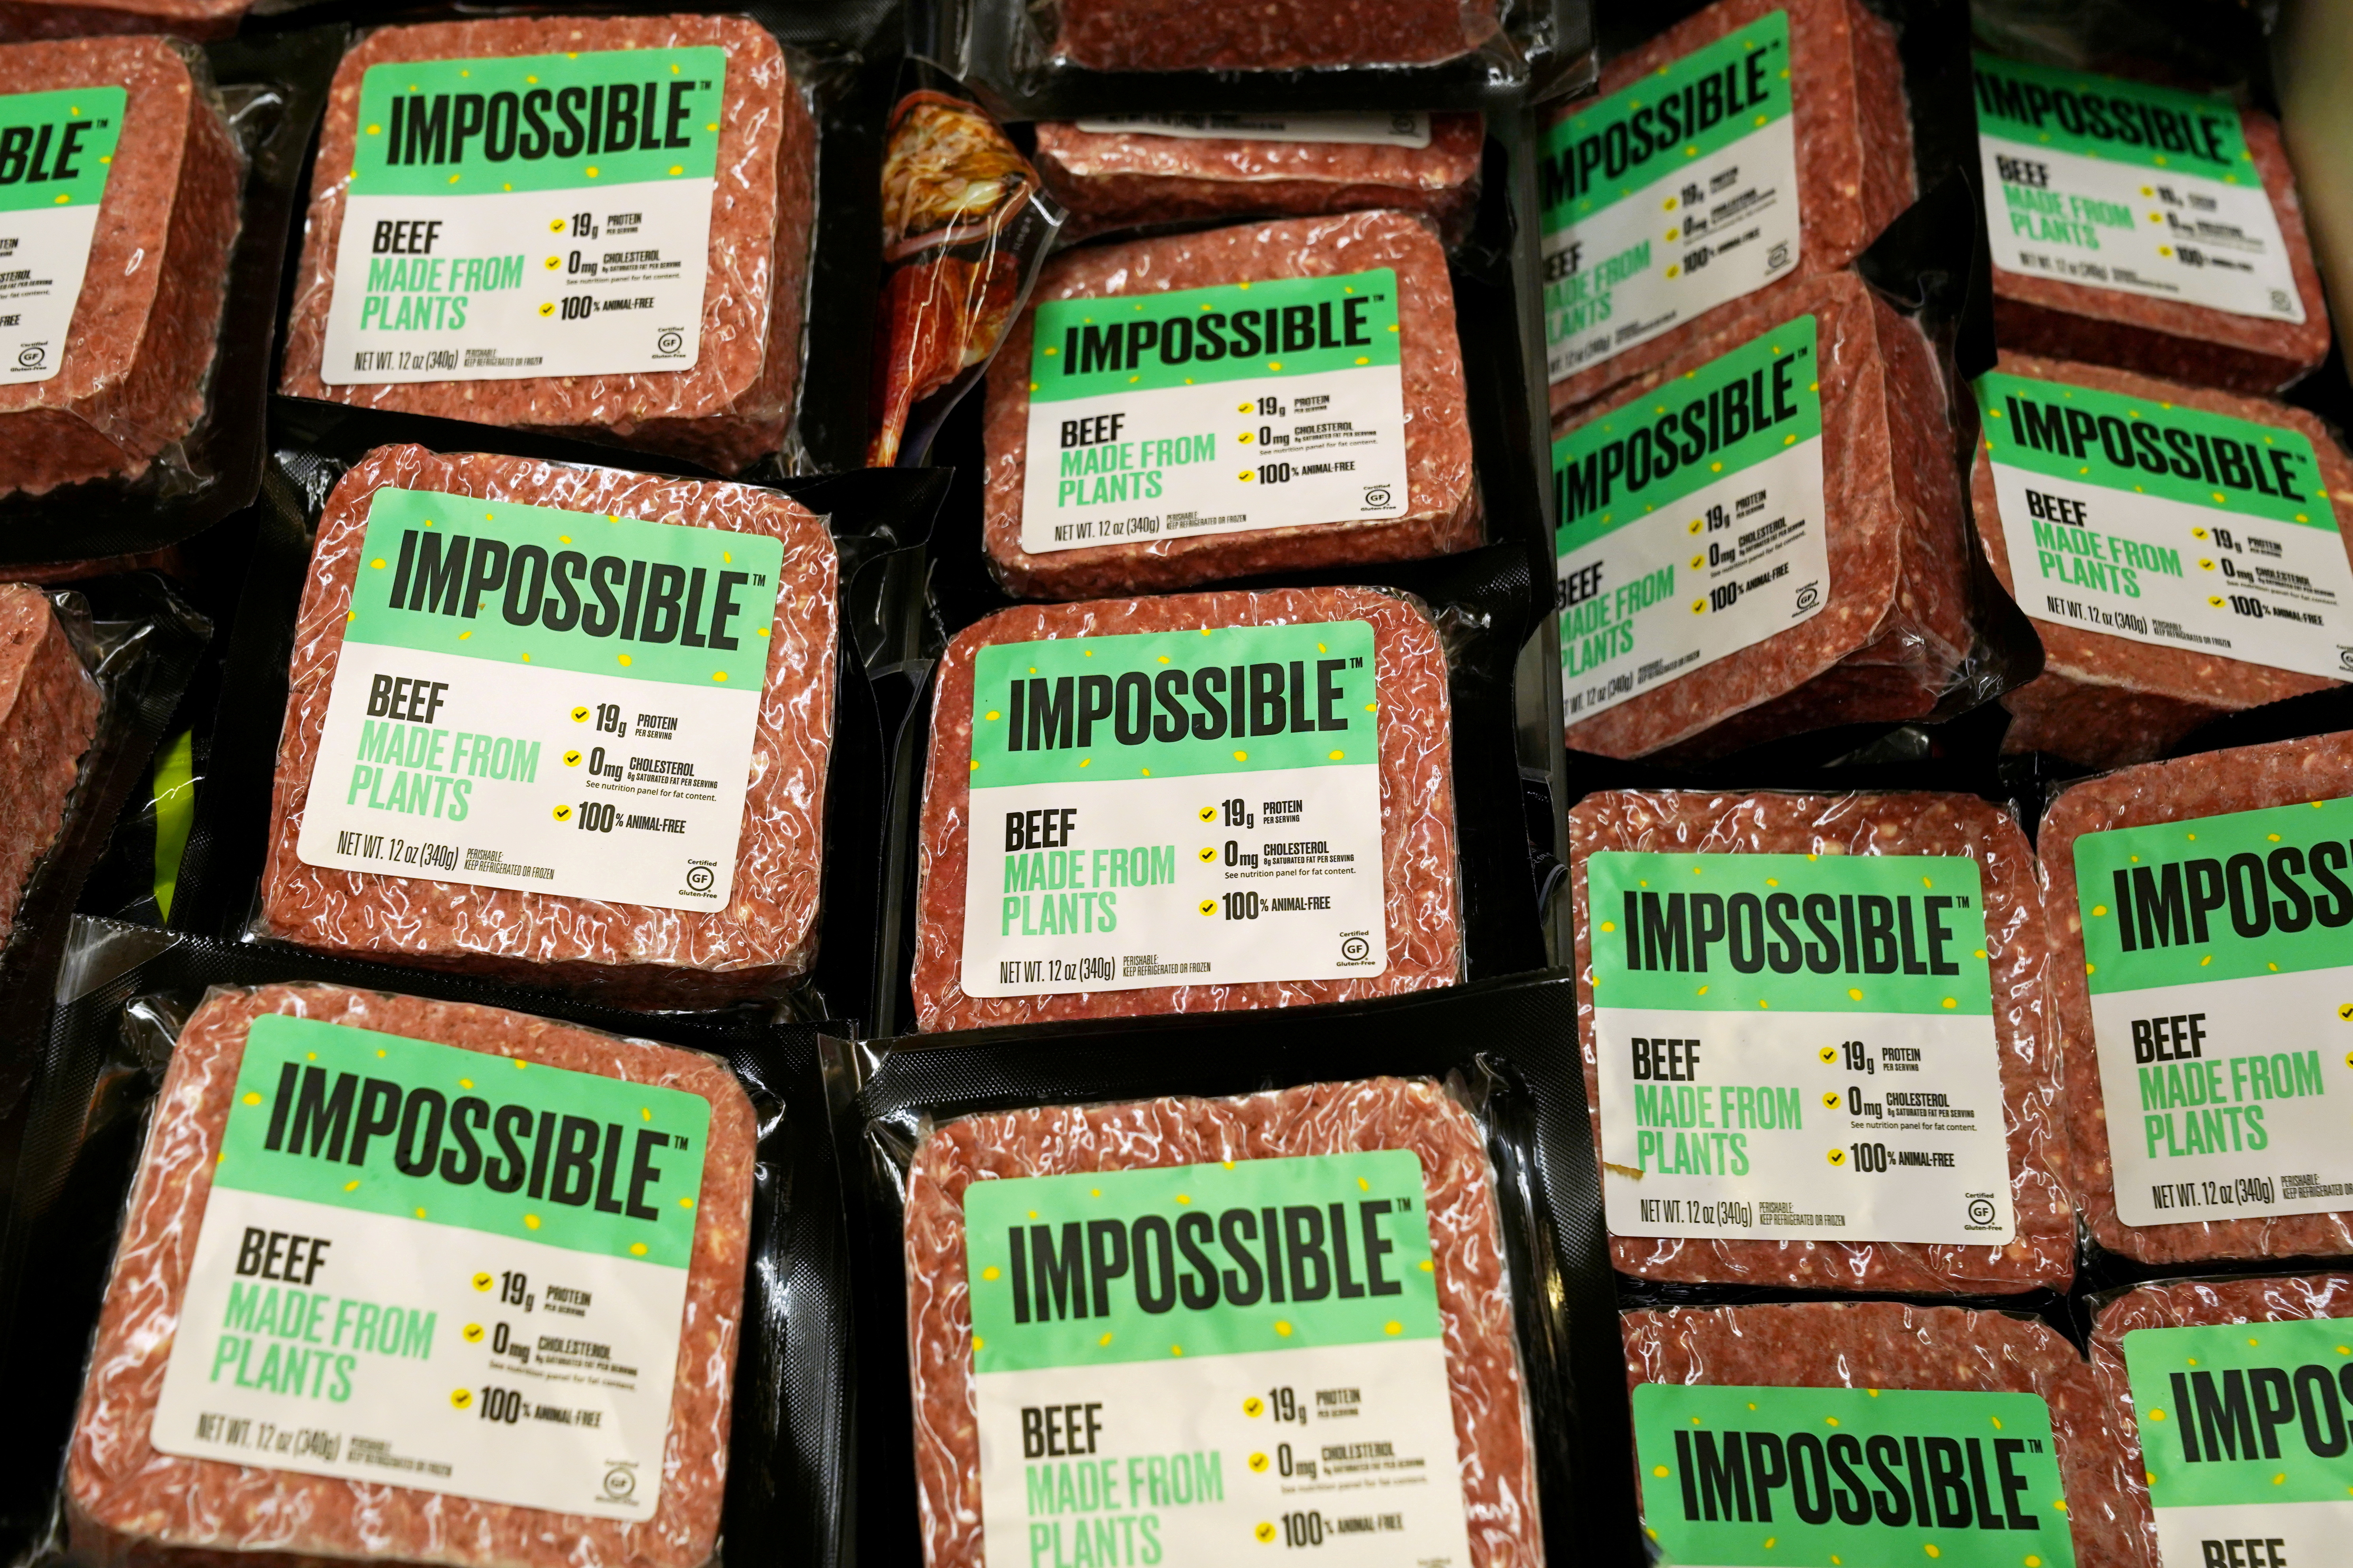 Impossible Foods plant-based beef products are seen inside a refrigerator at the meat section of a chain supermarket in Hong Kong, China, October 20, 2020. REUTERS/Lam Yik/File Photo/File Photo